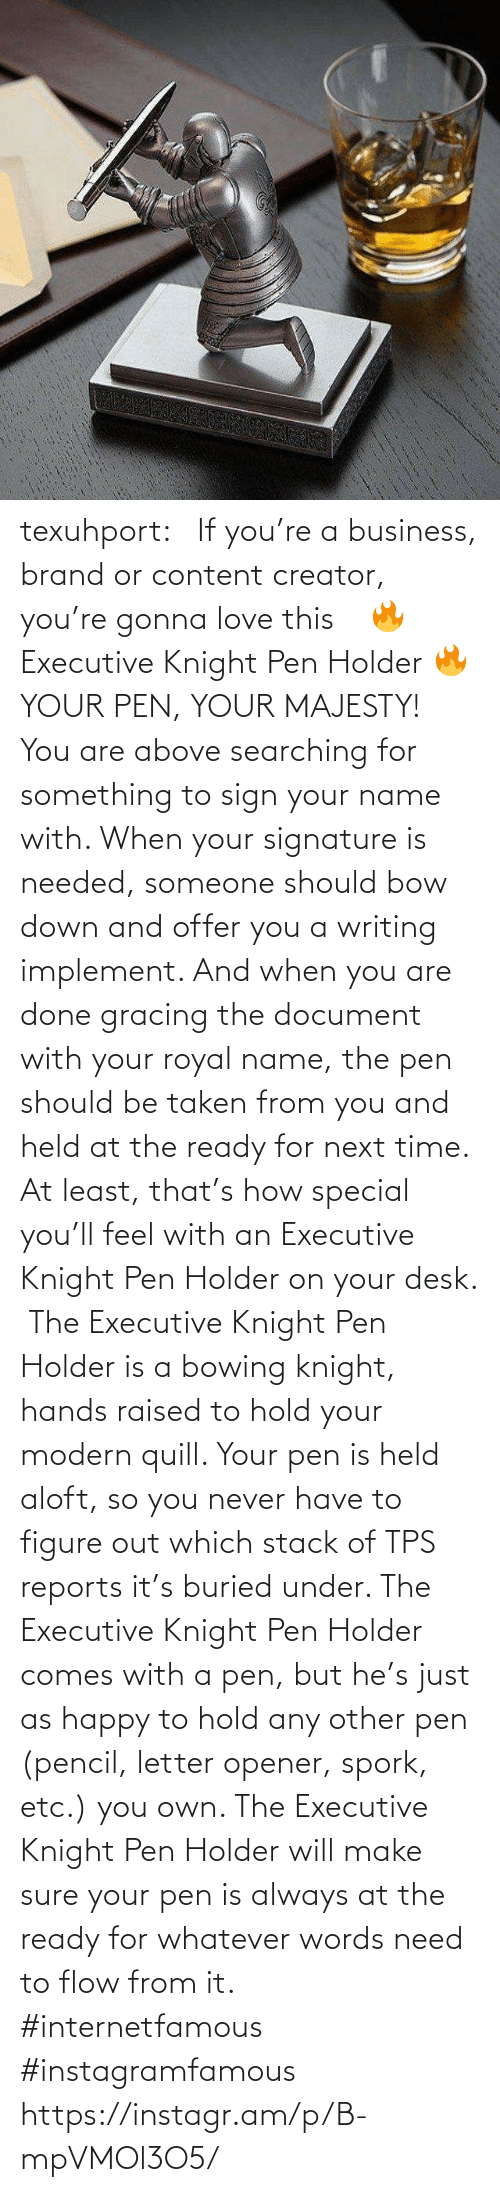 Quill: texuhport:⎆ If you're a business, brand or content creator, you're gonna love this ⎆⁣ 🔥 Executive Knight Pen Holder 🔥⁣ YOUR PEN, YOUR MAJESTY!⁣ ⁣ You are above searching for something to sign your name with. When your signature is needed, someone should bow down and offer you a writing implement. And when you are done gracing the document with your royal name, the pen should be taken from you and held at the ready for next time. At least, that's how special you'll feel with an Executive Knight Pen Holder on your desk.⁣ ⁣ The Executive Knight Pen Holder is a bowing knight, hands raised to hold your modern quill. Your pen is held aloft, so you never have to figure out which stack of TPS reports it's buried under. The Executive Knight Pen Holder comes with a pen, but he's just as happy to hold any other pen (pencil, letter opener, spork, etc.) you own. The Executive Knight Pen Holder will make sure your pen is always at the ready for whatever words need to flow from it.⁣ #internetfamous  #instagramfamous https://instagr.am/p/B-mpVMOl3O5/